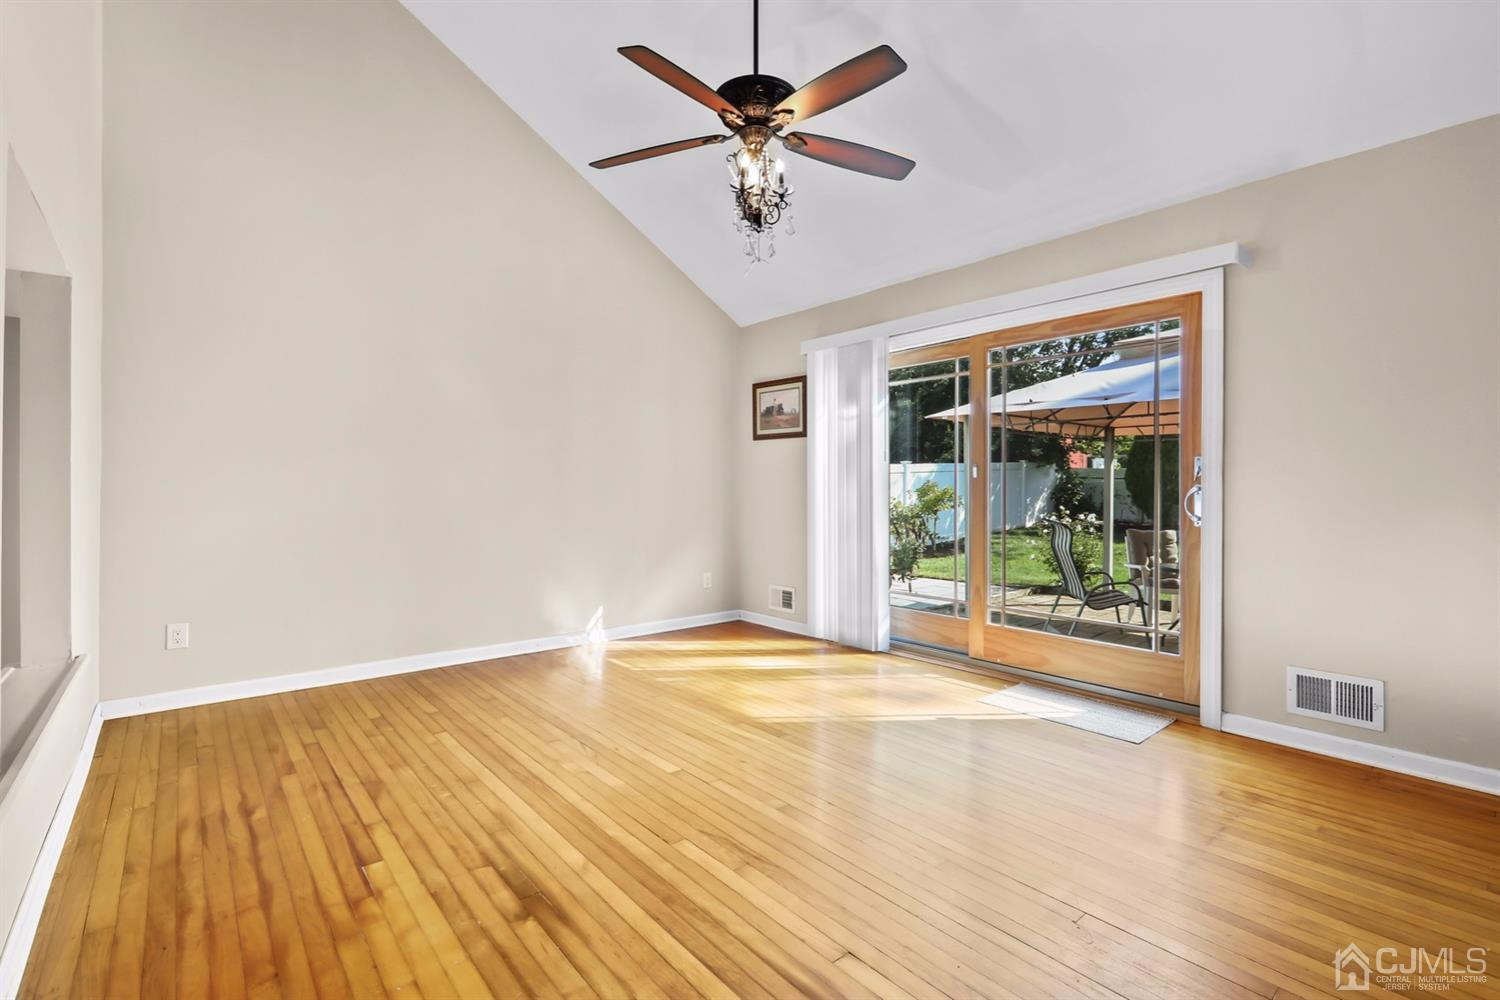 Another view of this gorgeous room with high ceilings and a beautiful slider to the yard